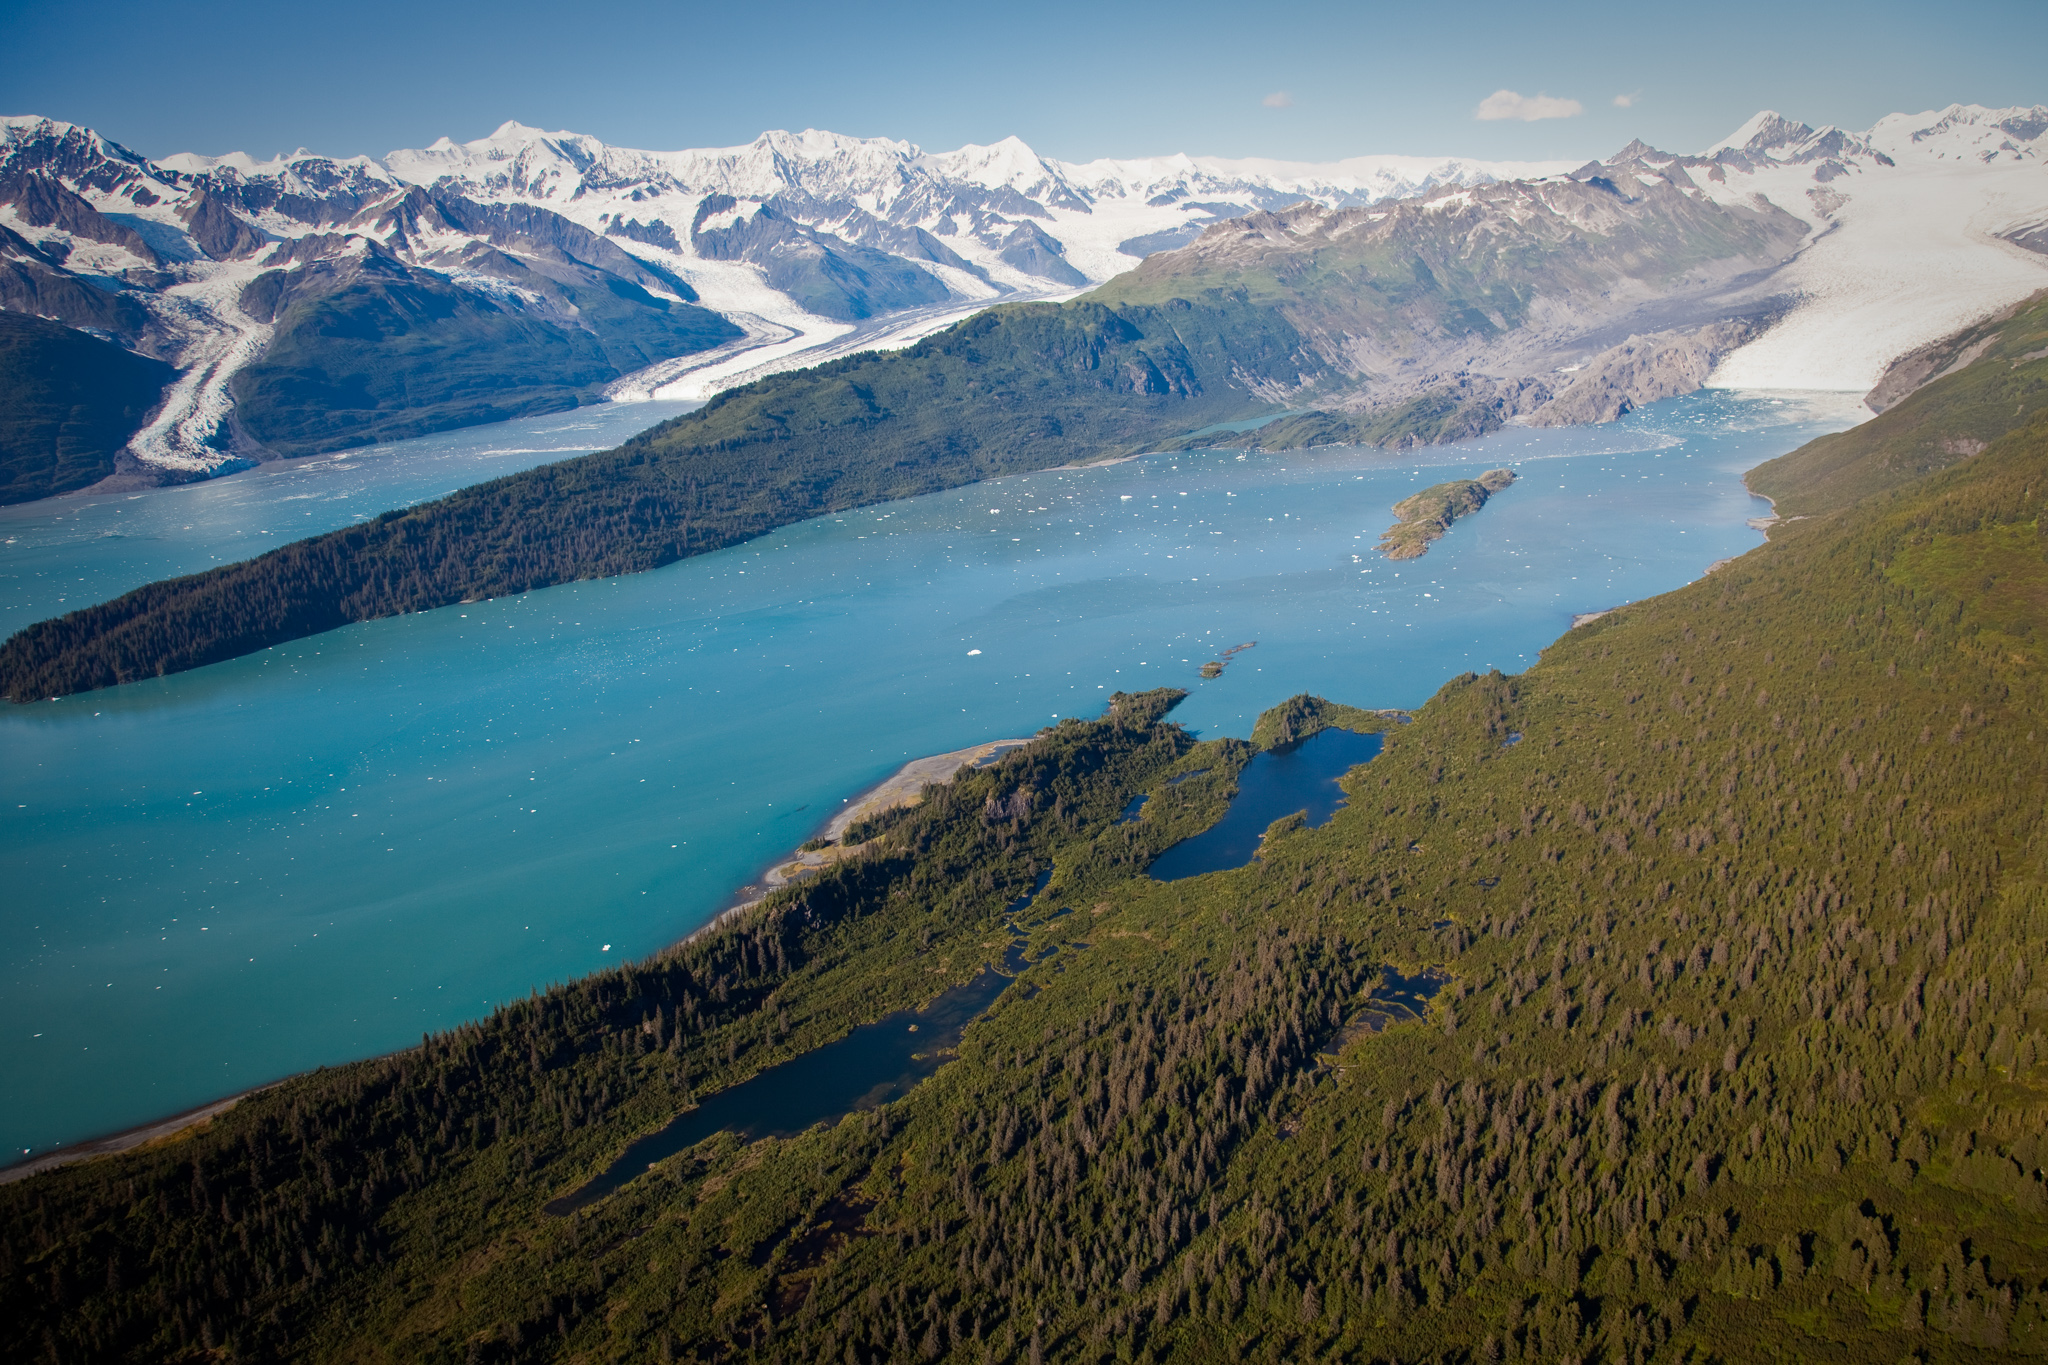 Ultimate Glacier & Fjord Adventure - 14-Day Cruise From Seward (Anchorage) to Vancouver Aboard the Seabourn Sojourn